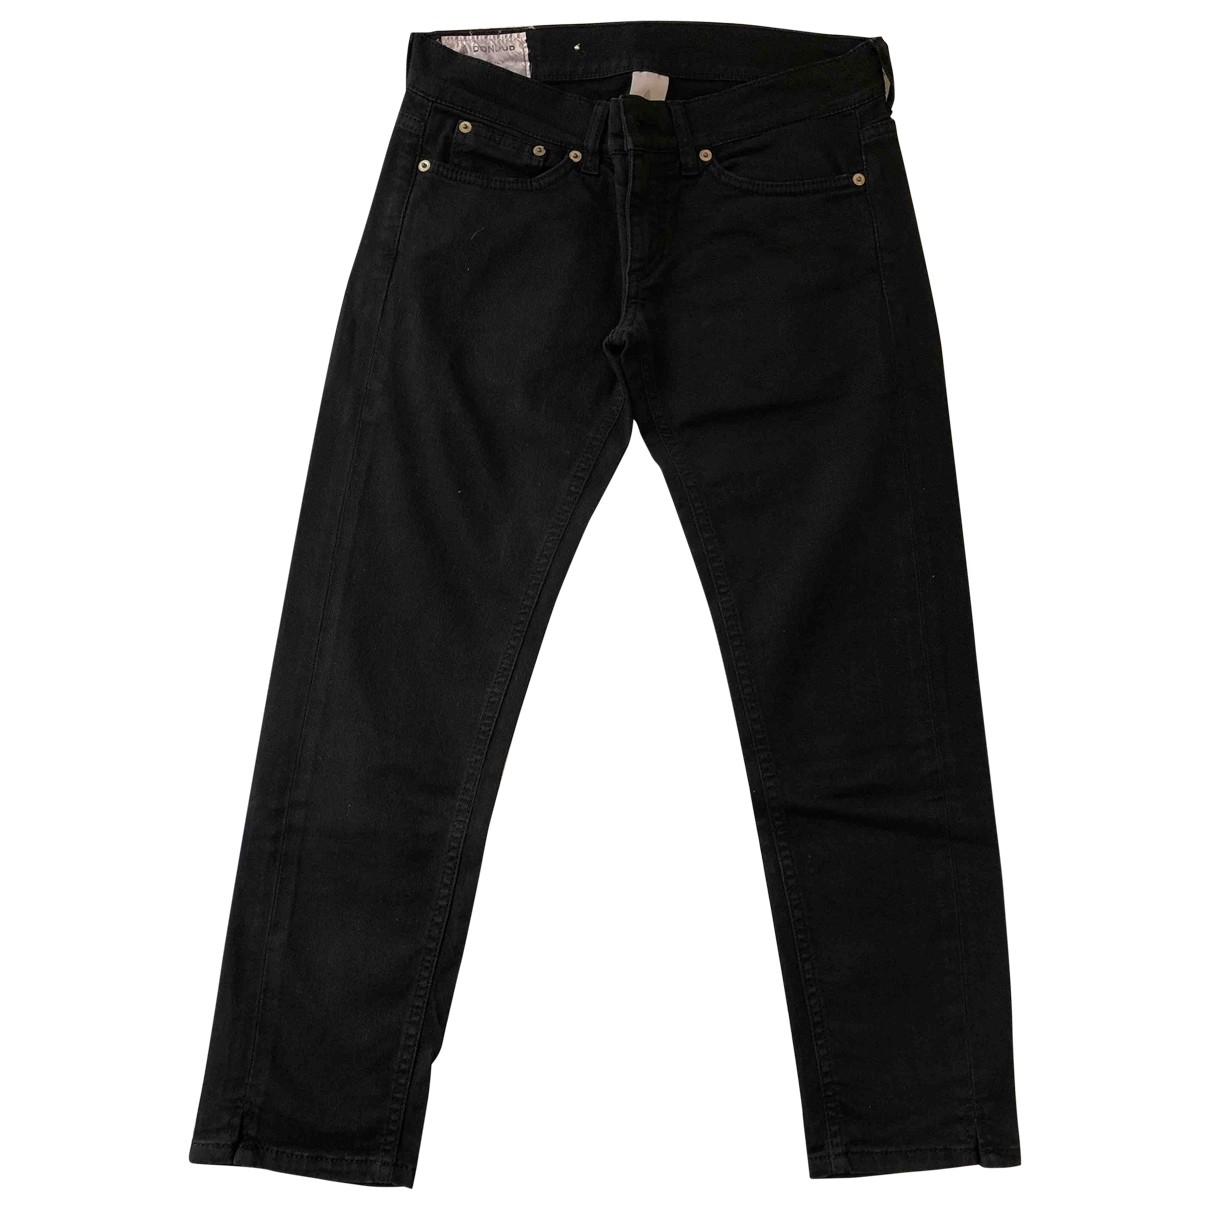 Dondup \N Black Cotton - elasthane Jeans for Women 27 US